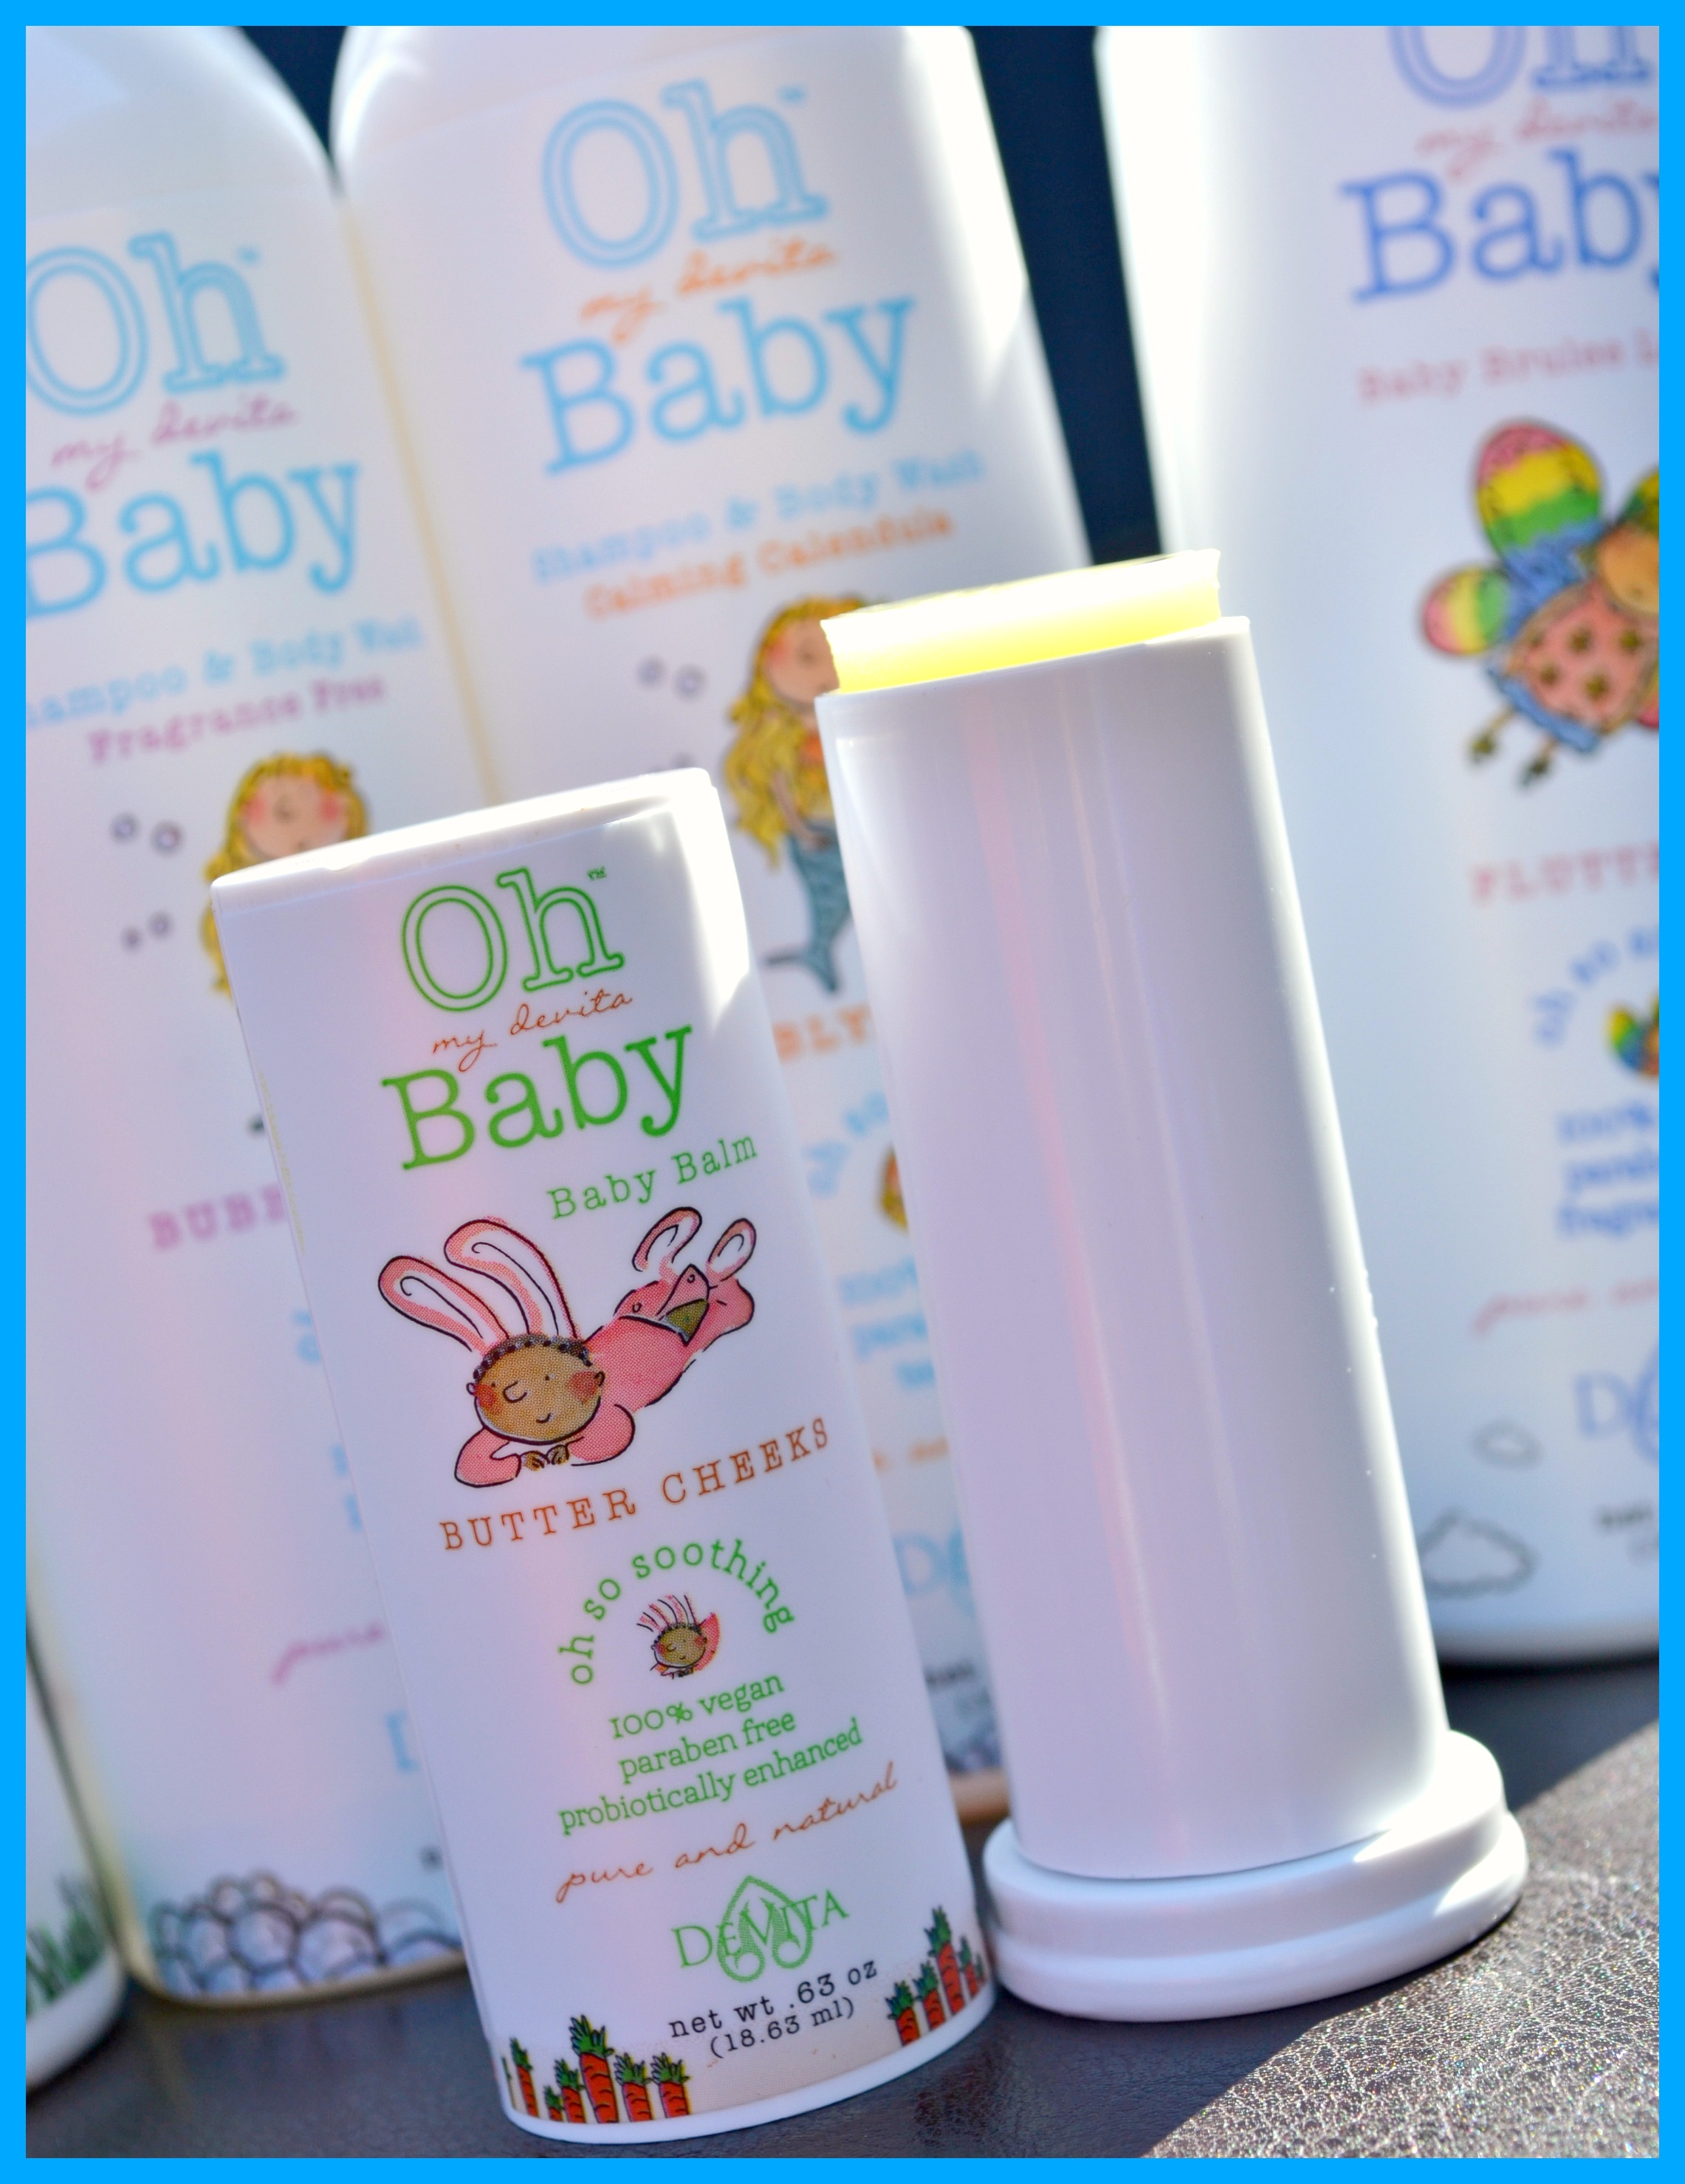 Oh My DeVita Baby Review (Getting Ready For Baby Gift Guide)